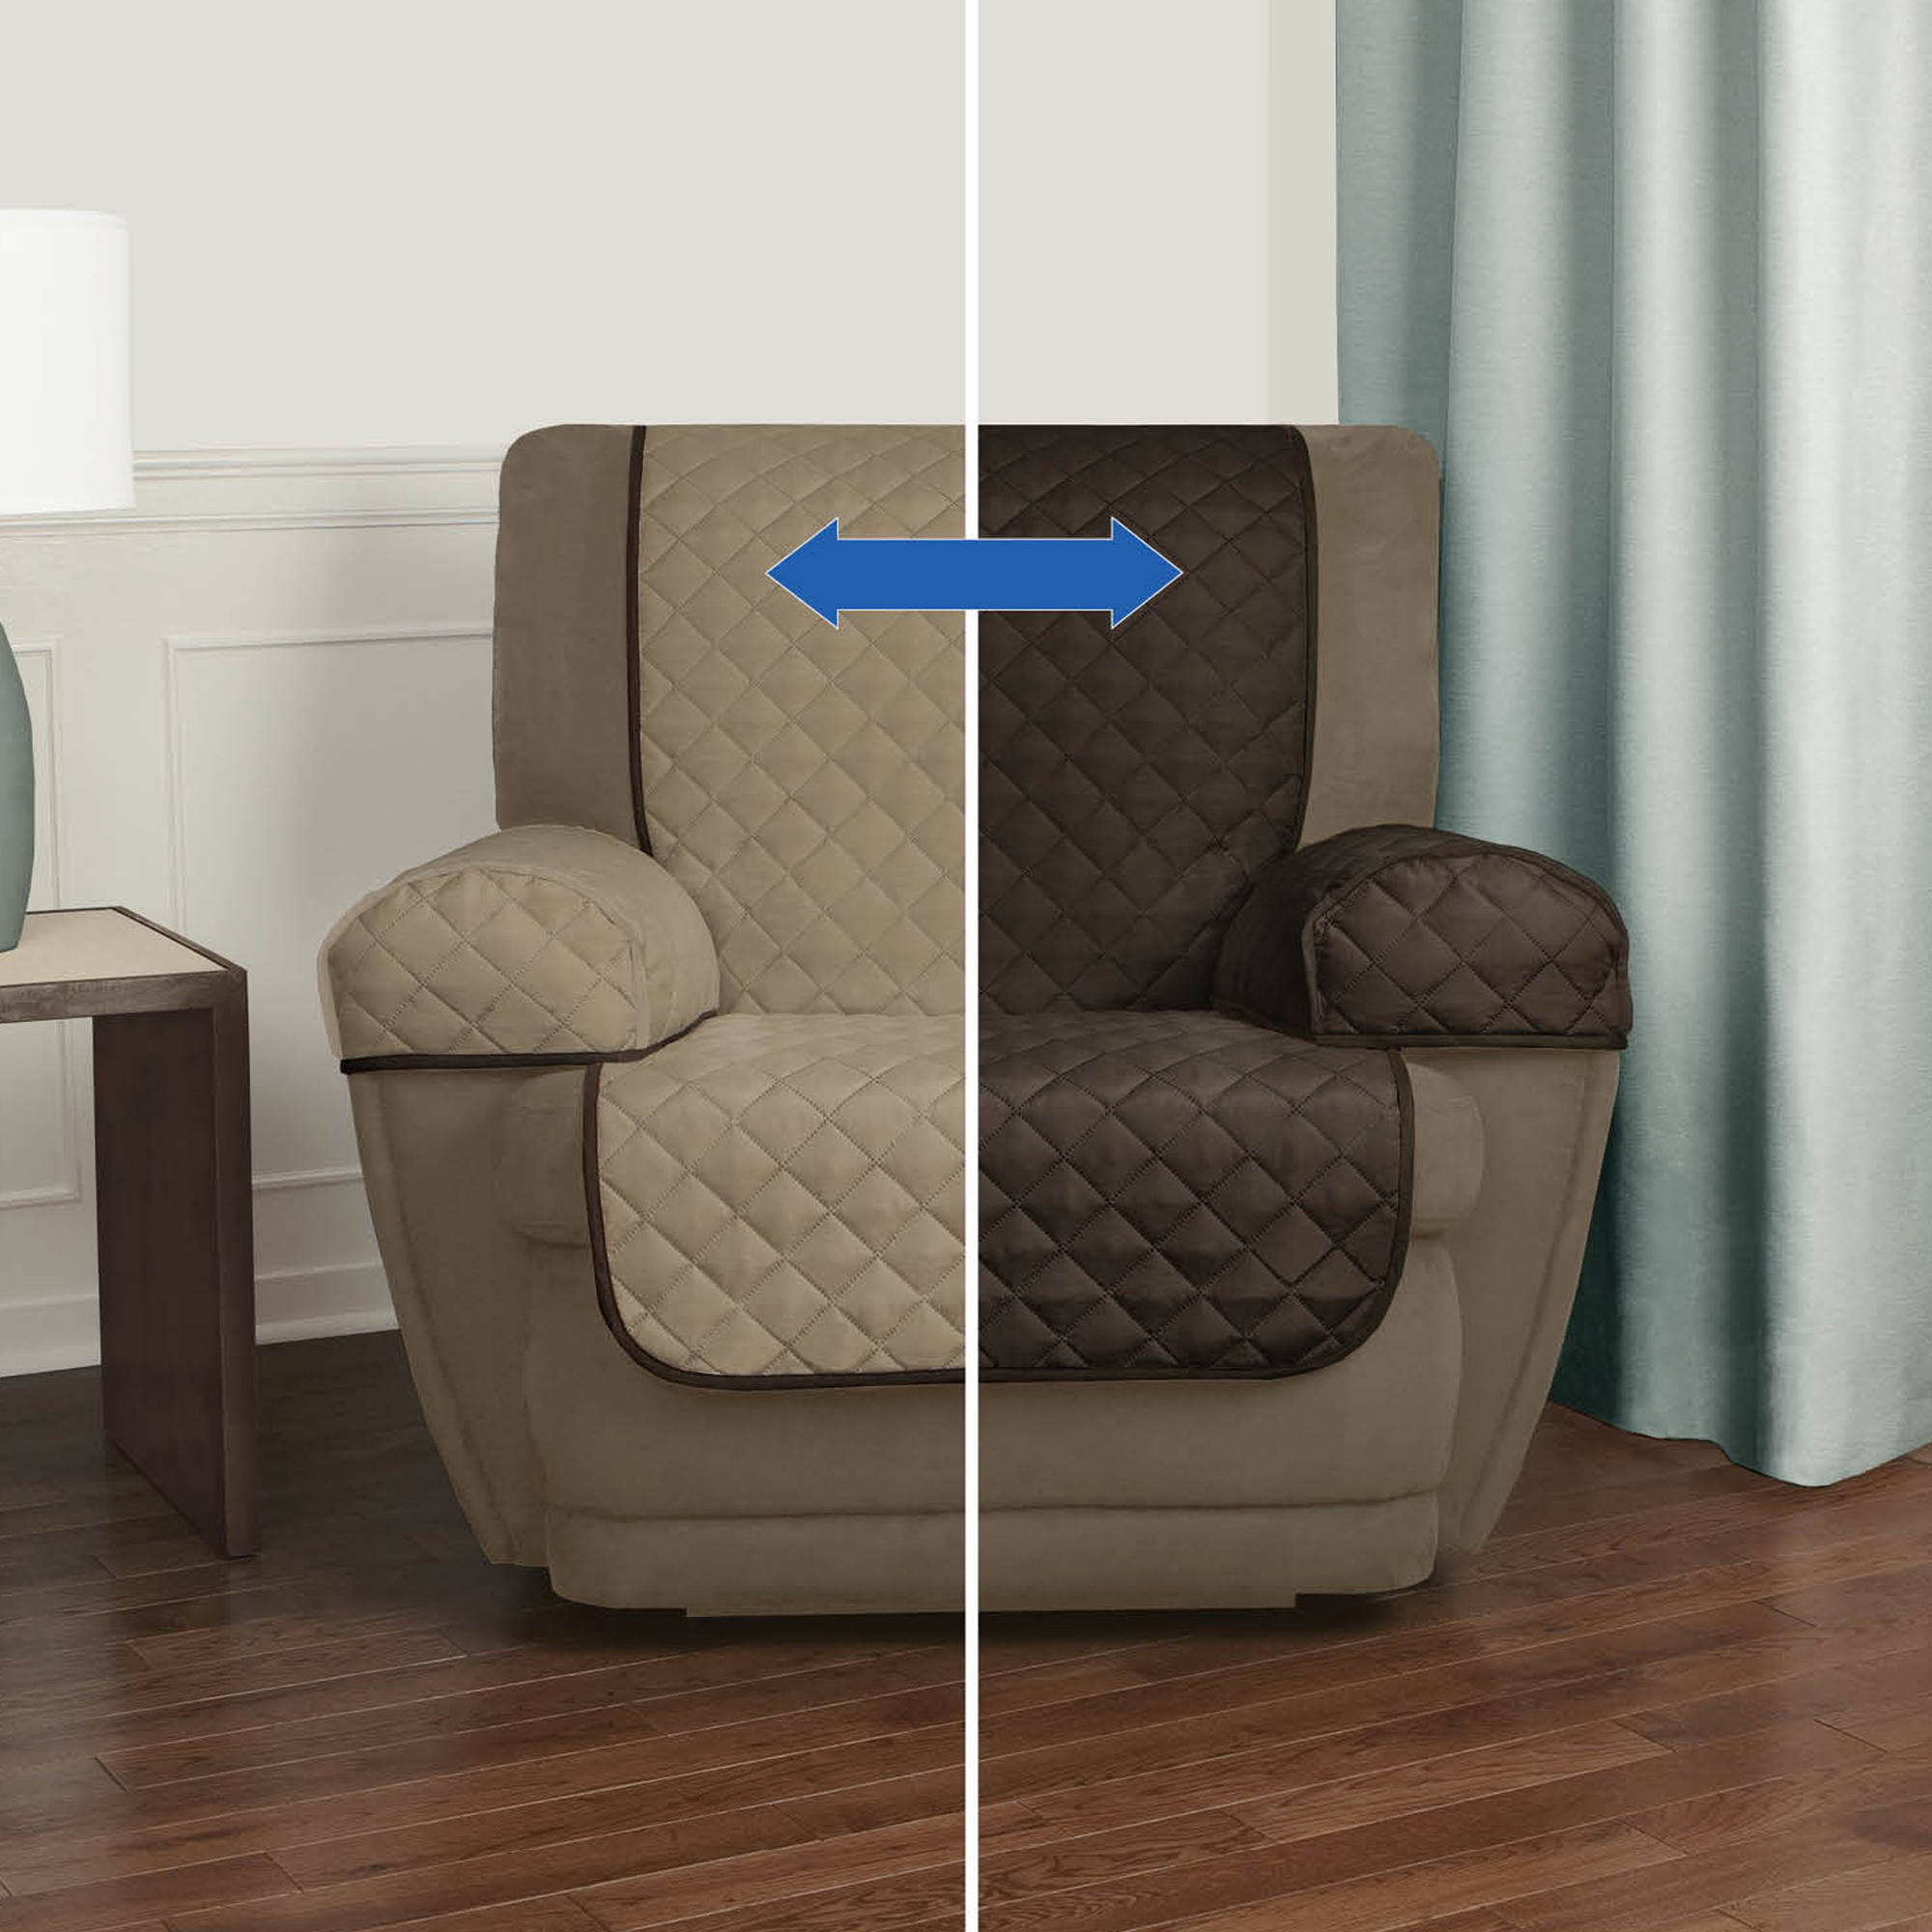 Delicieux SOLID COLOR FURNITURE THROW COVERS, CHAIR, BROWN   Walmart.com